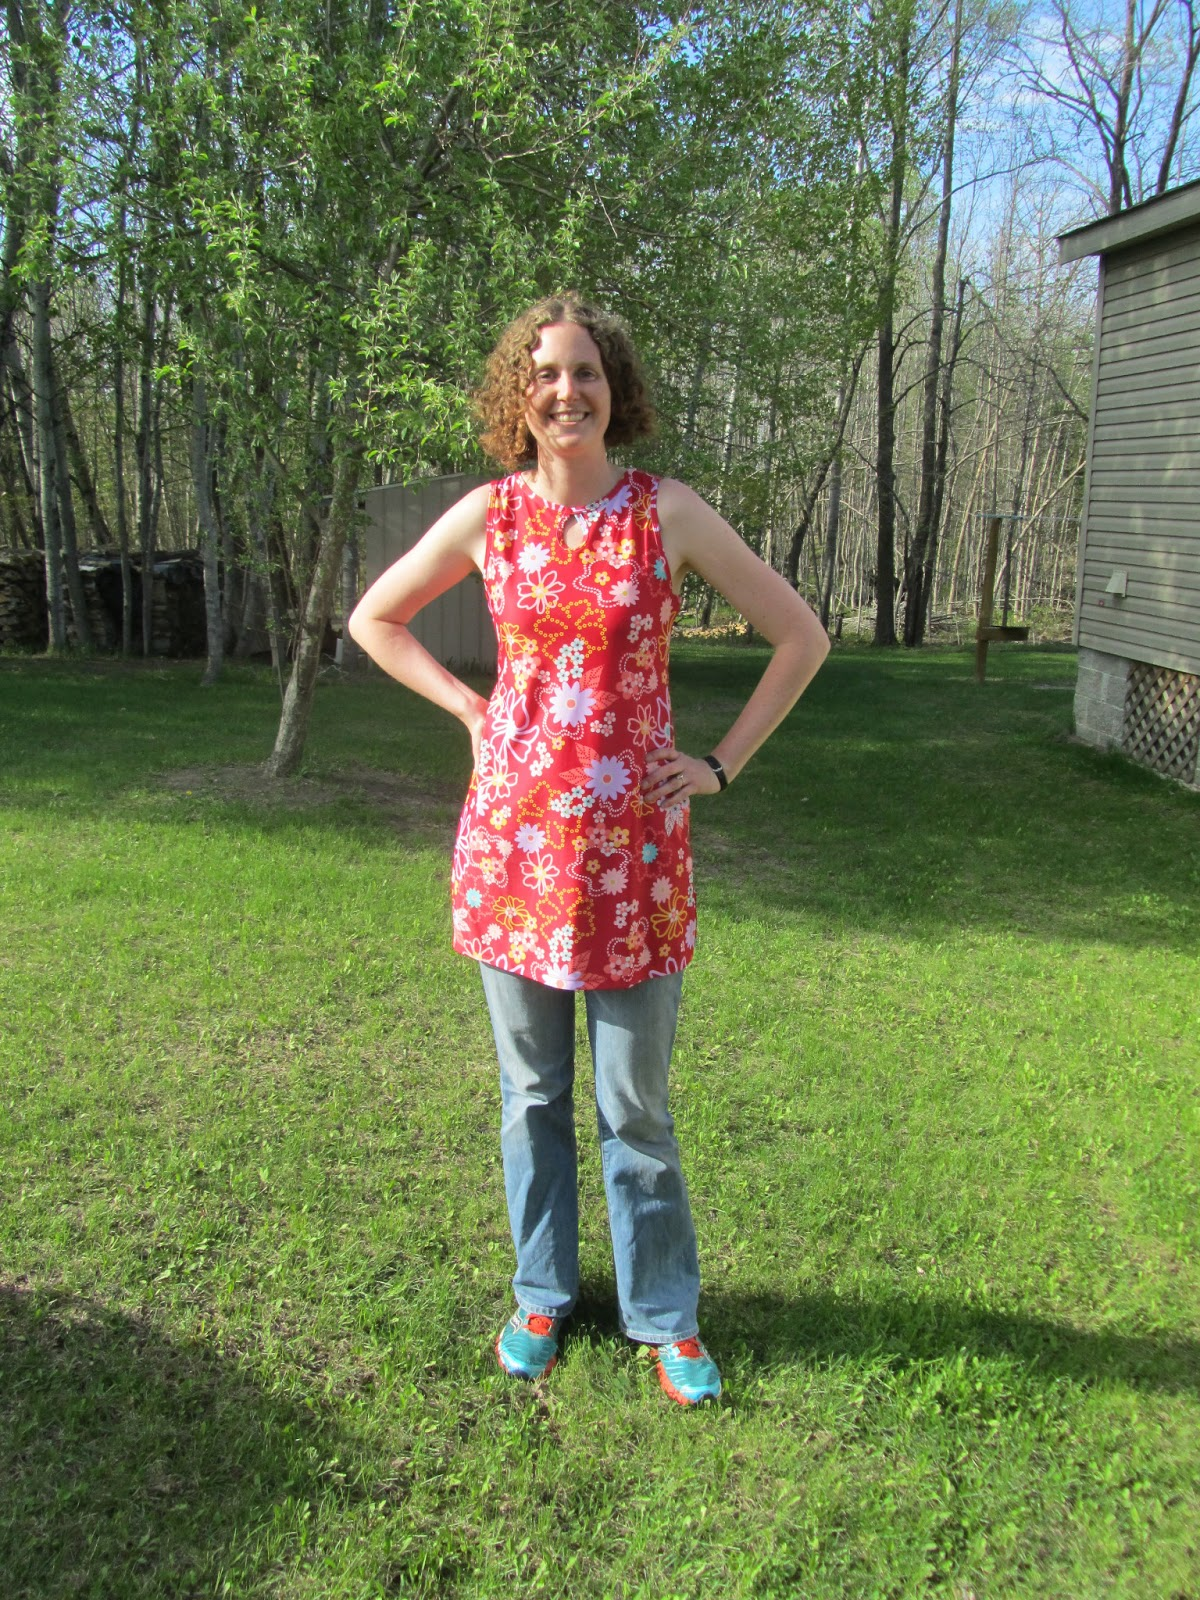 Run Sam Run: Nuu-Muu Running Dress!